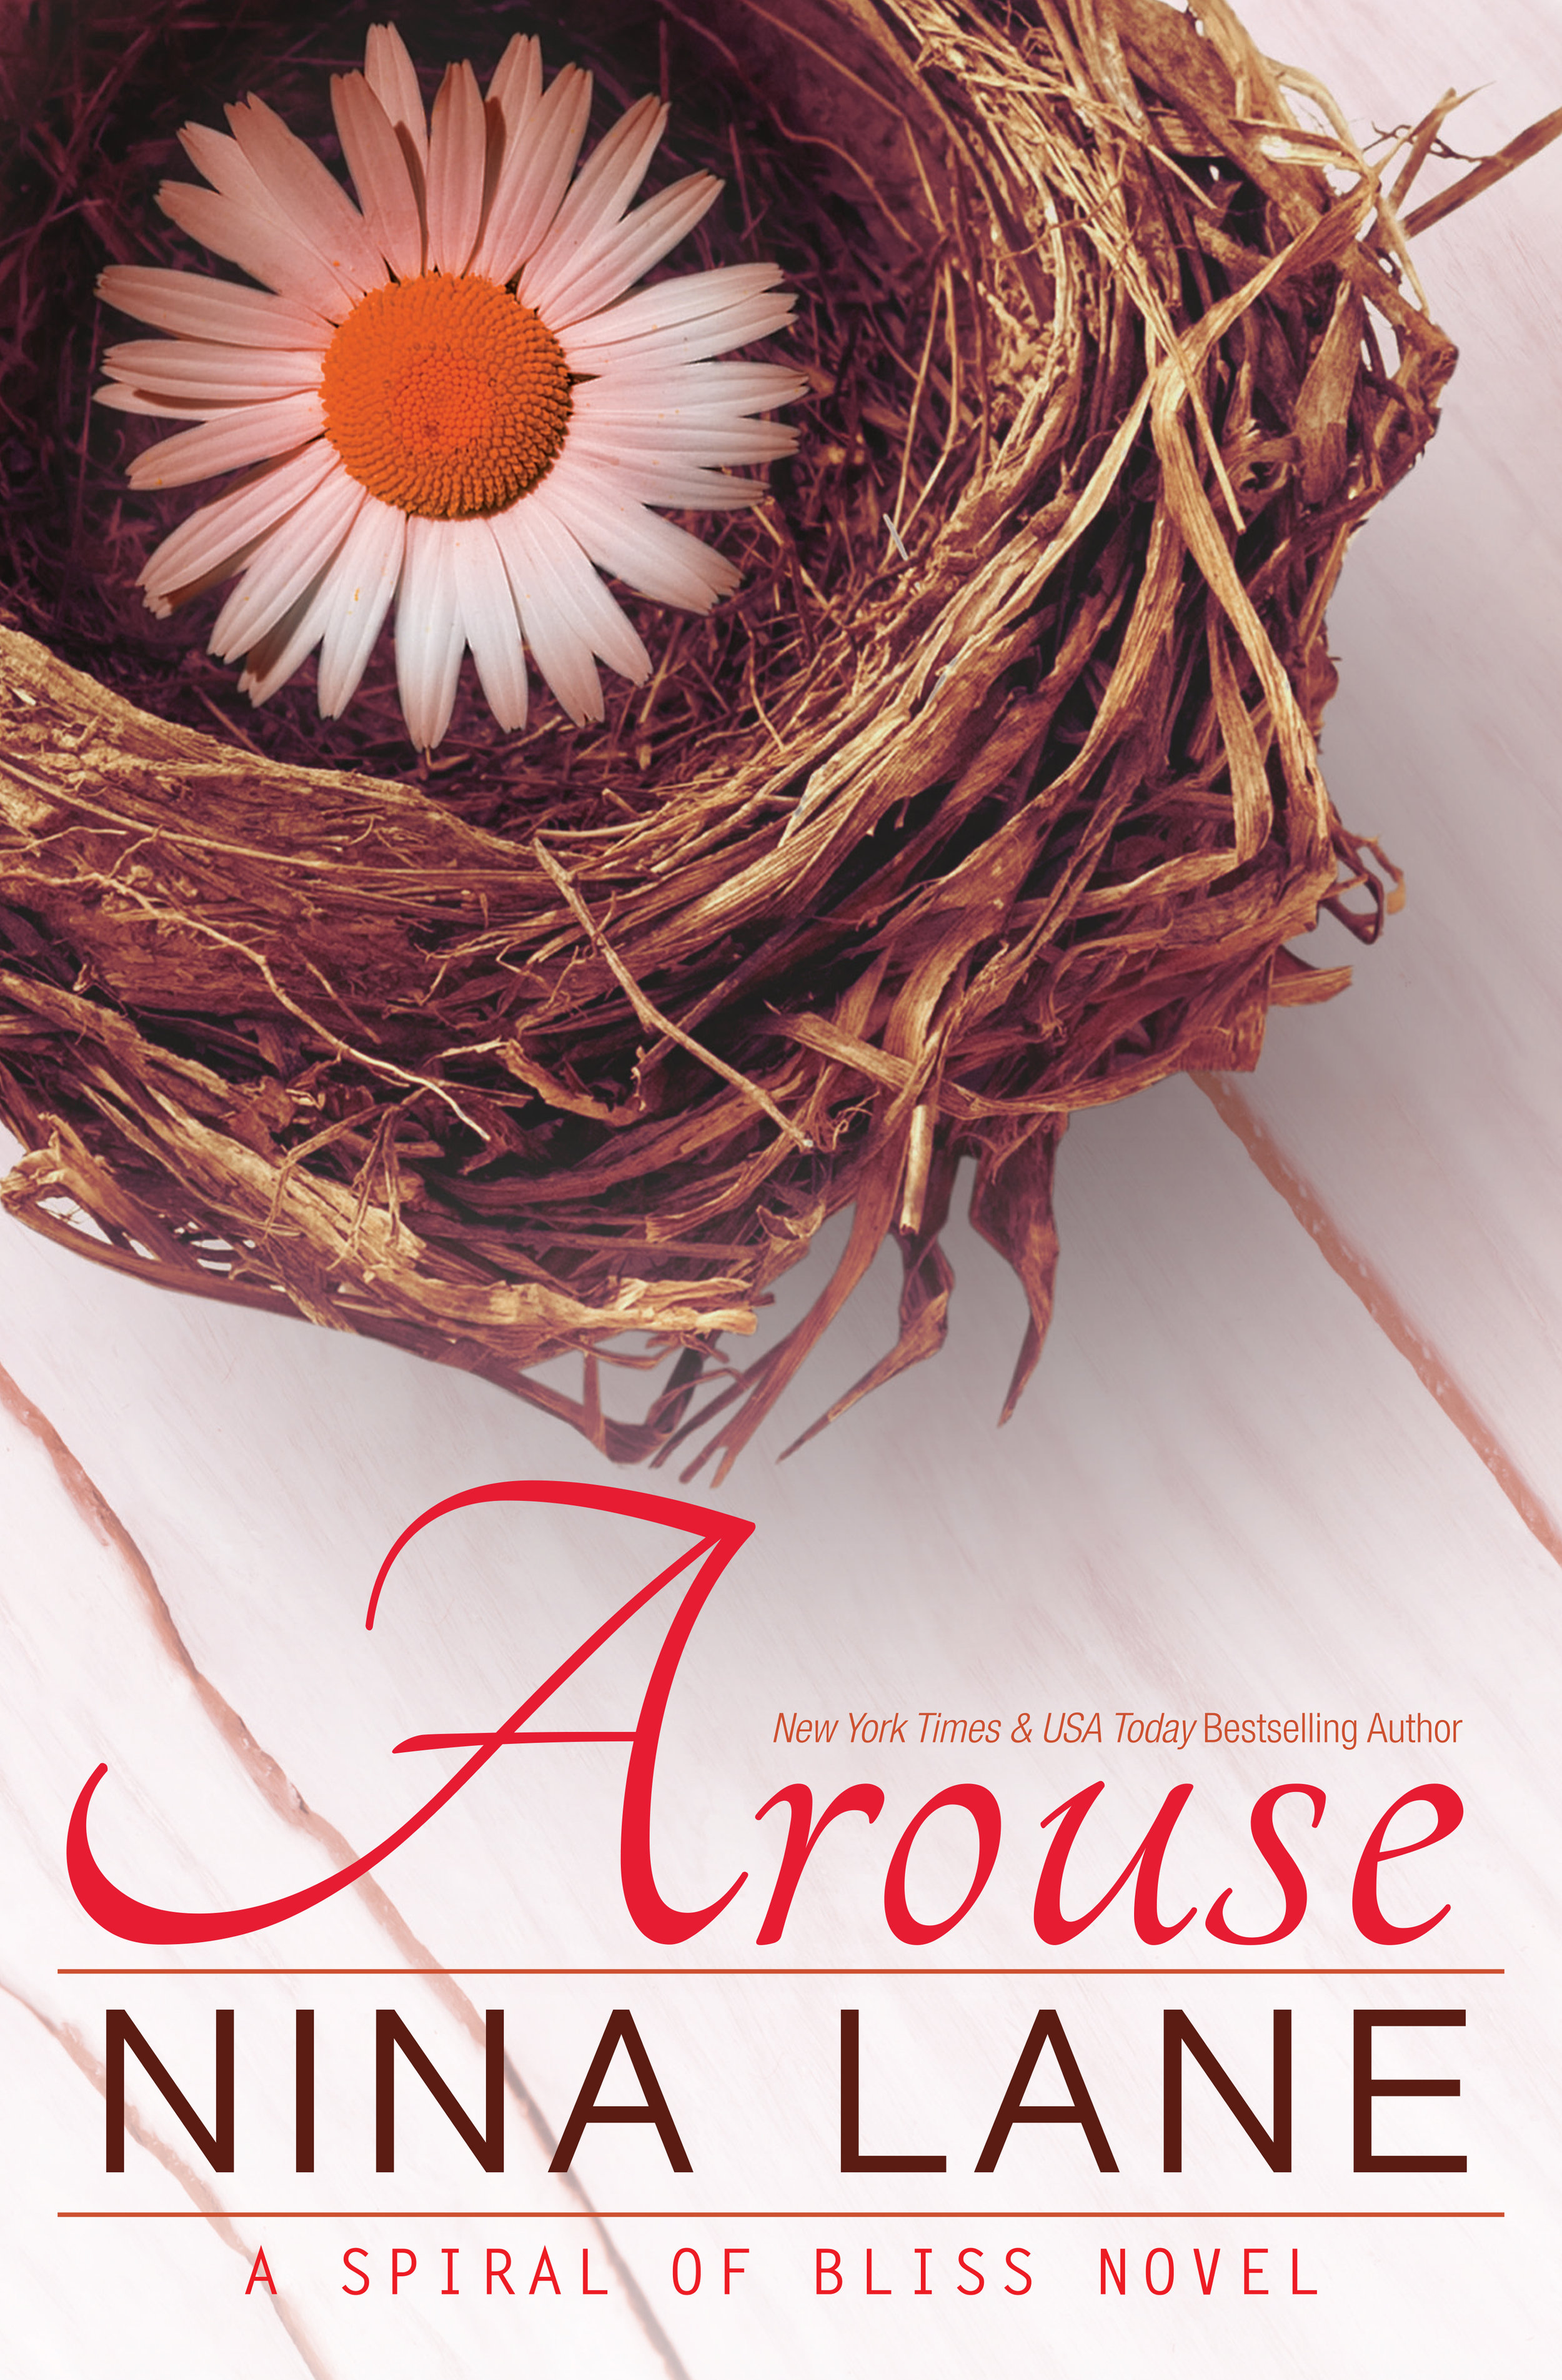 SOB_1_AROUSE_FrontCovers_Object_10917_Kindle.jpg